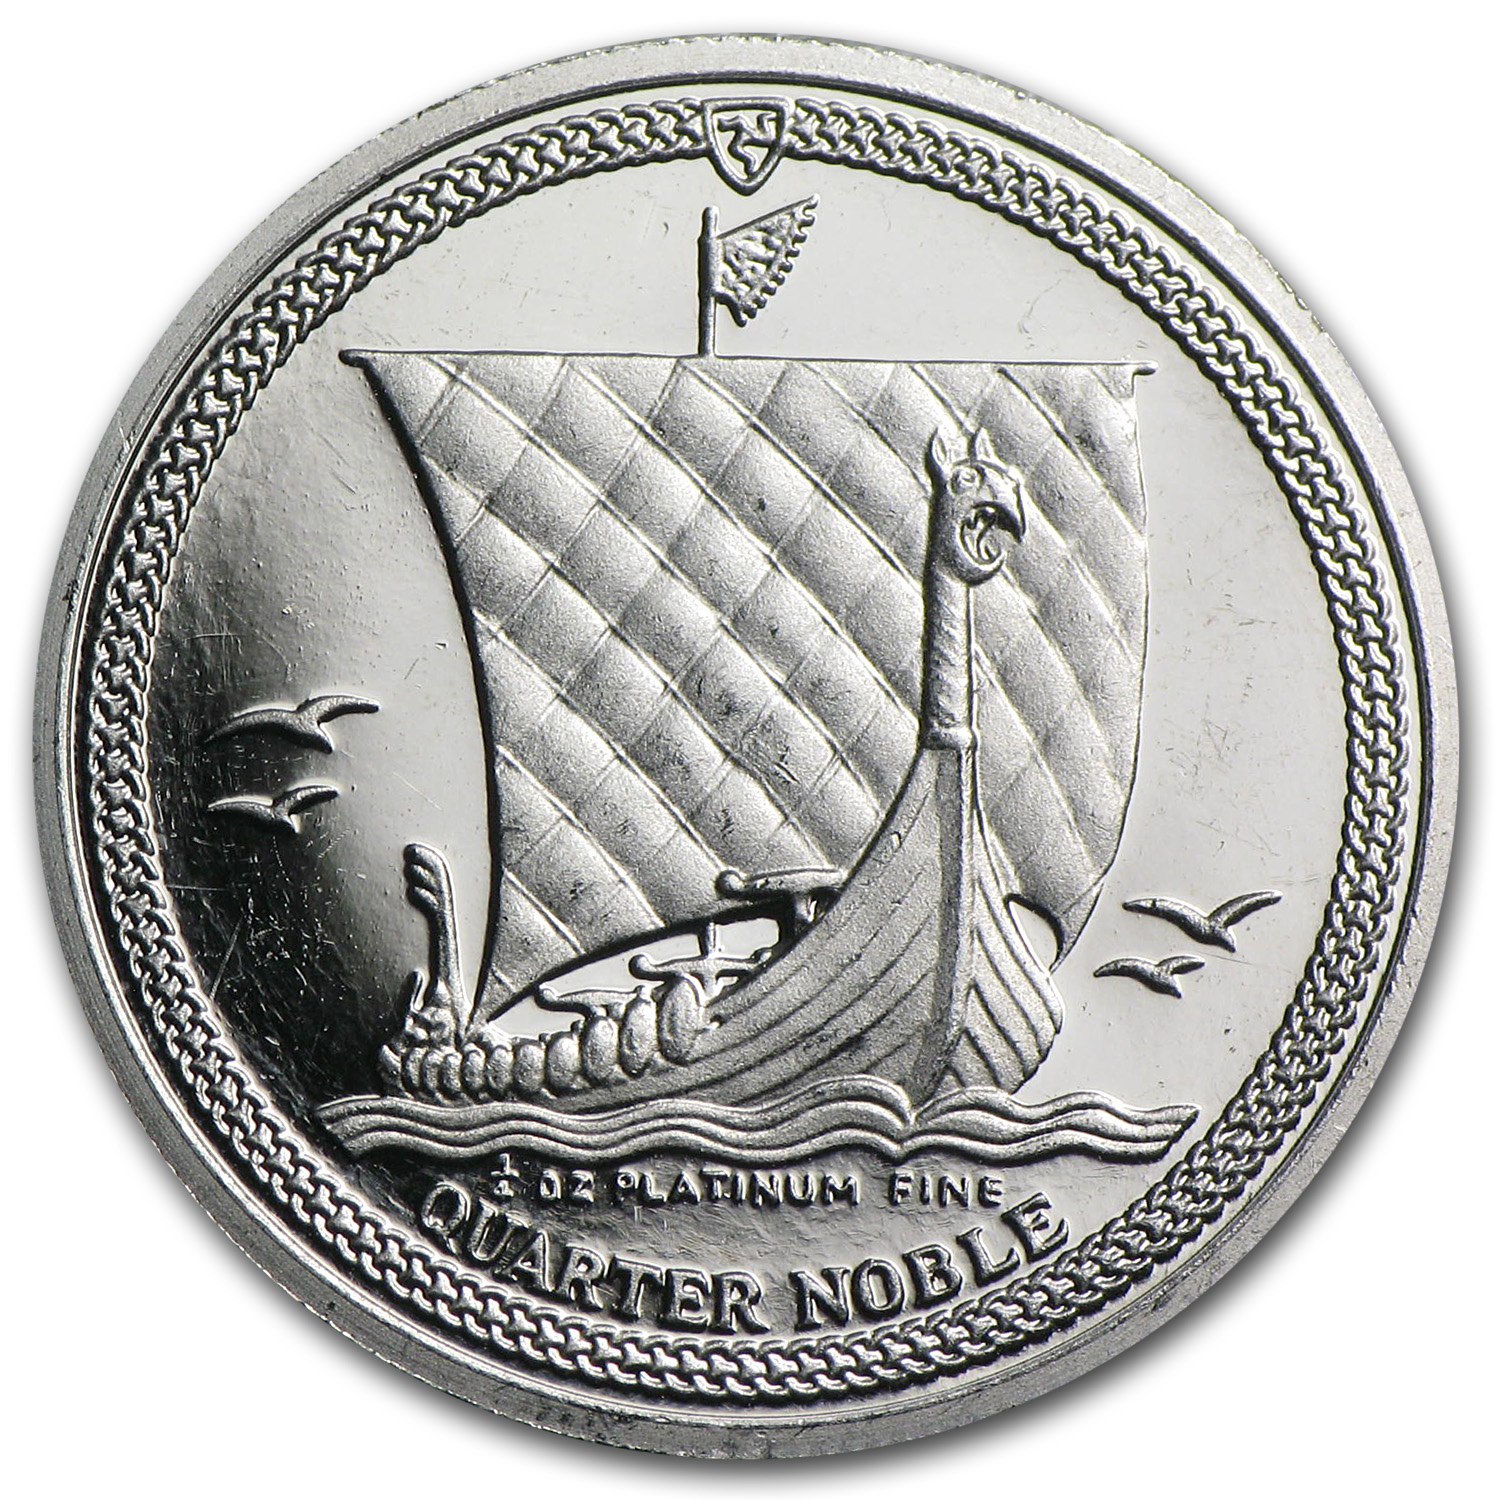 1/4 oz Isle of Man Platinum Noble (Proof)